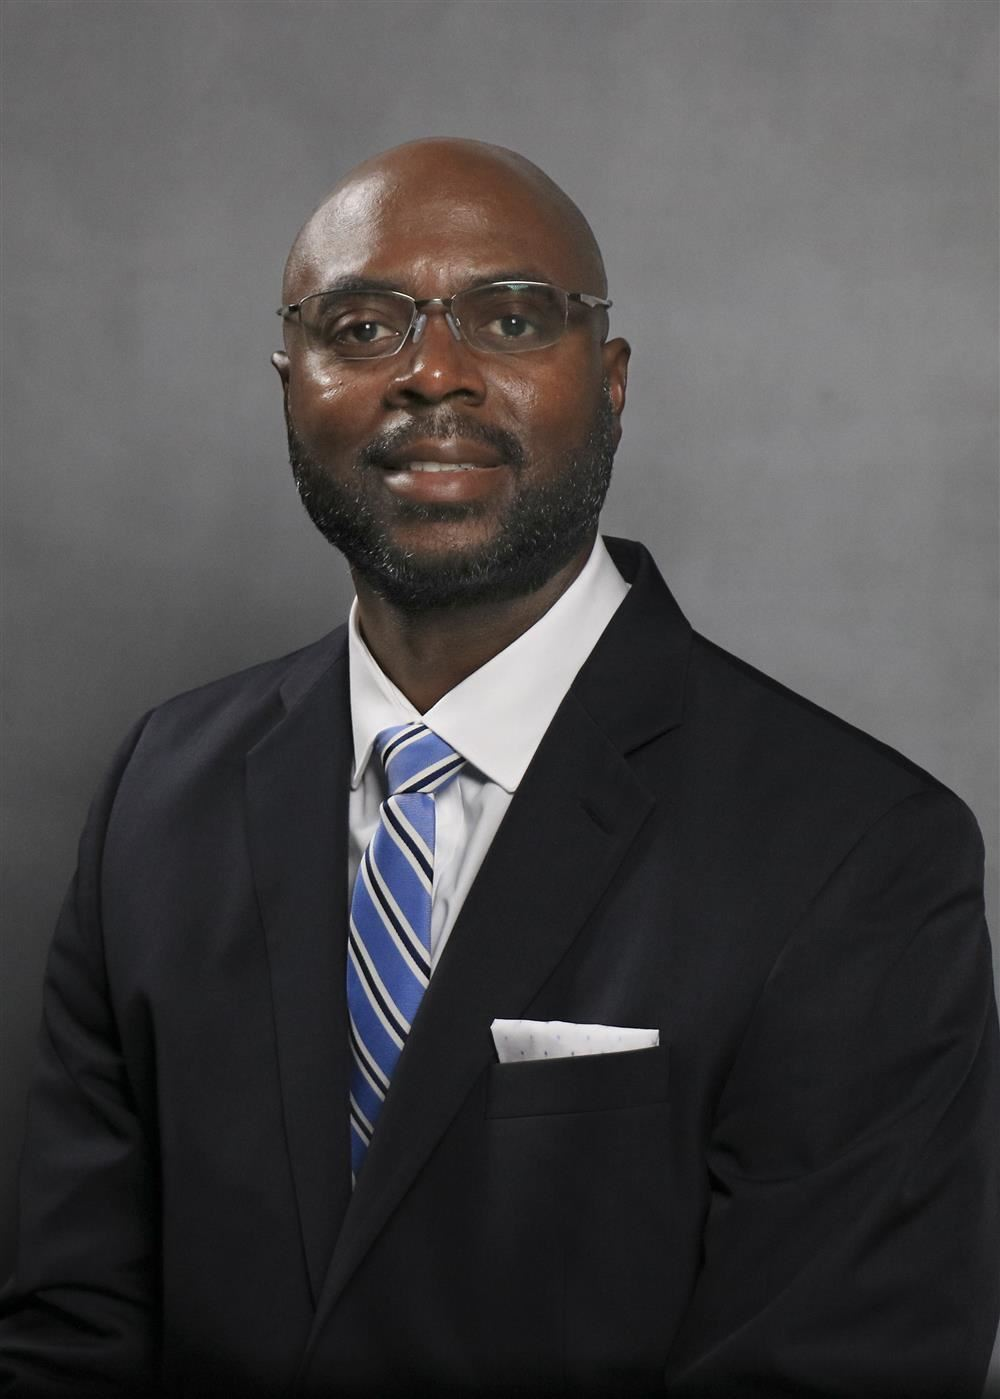 Mr. Eric Waters, Assistant Principal